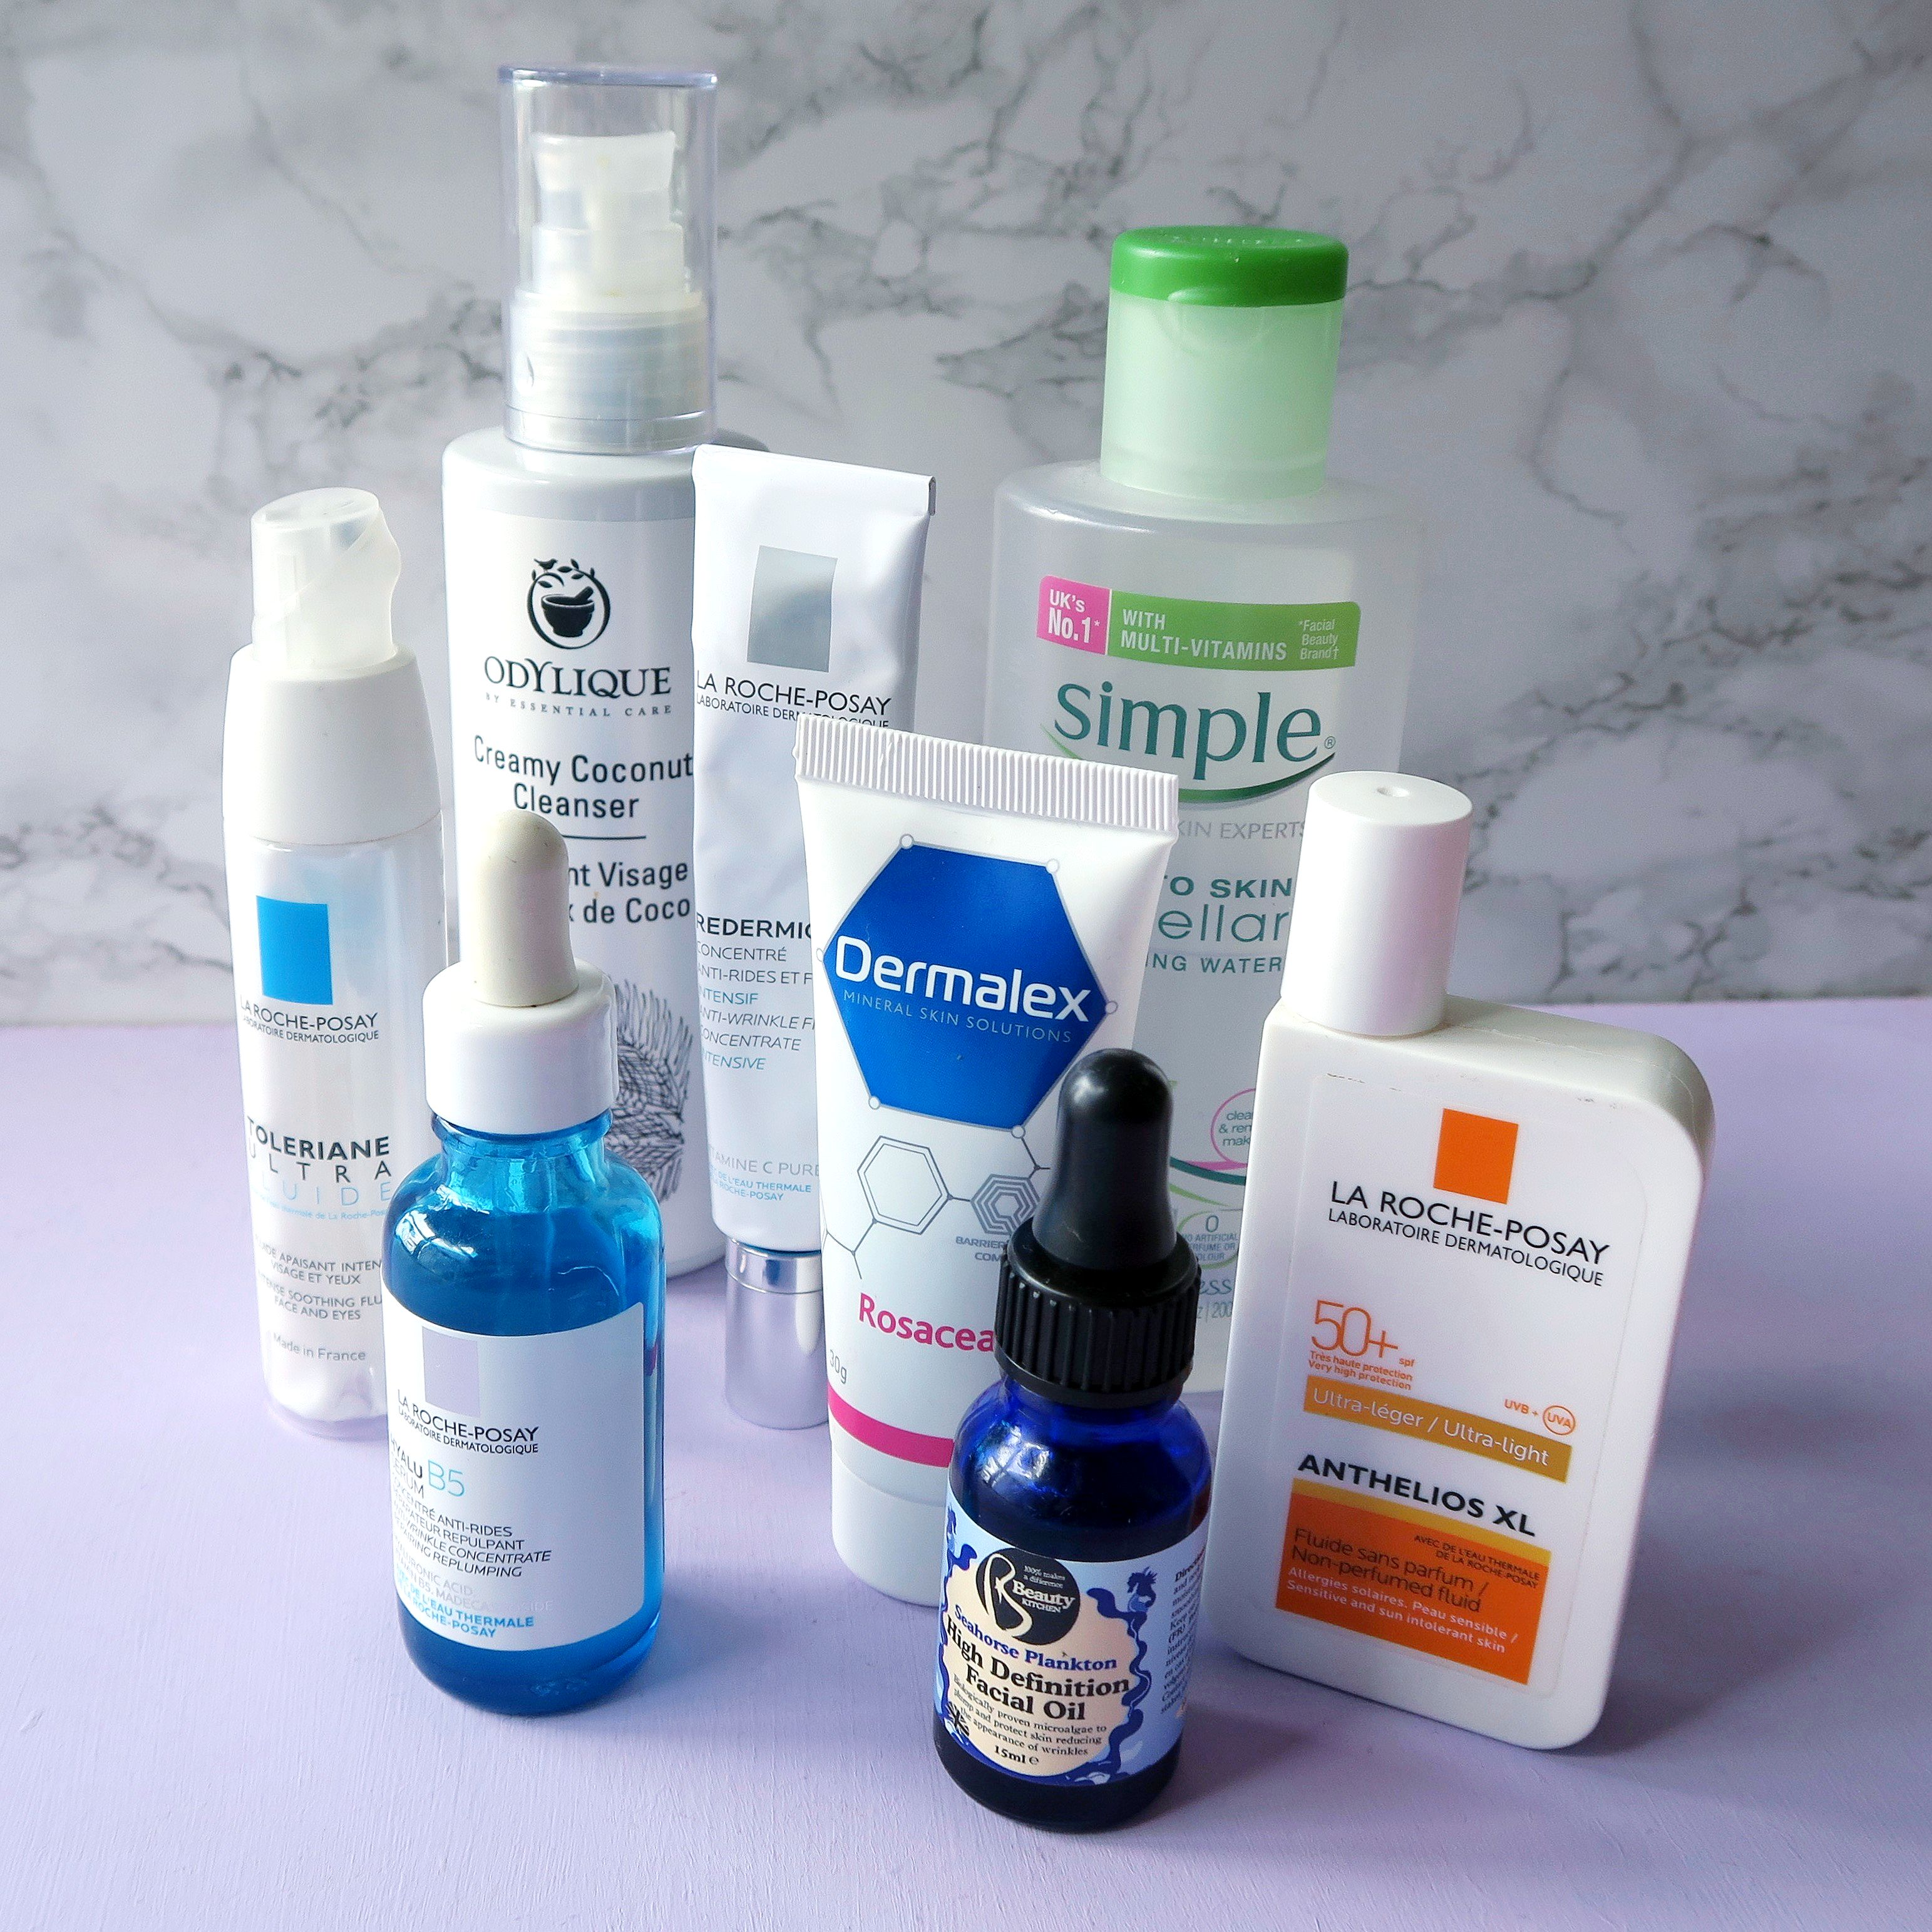 Skincare routine for sensitive skin, rosacea prone skin. More skincare advice and skincare tips on the blog.